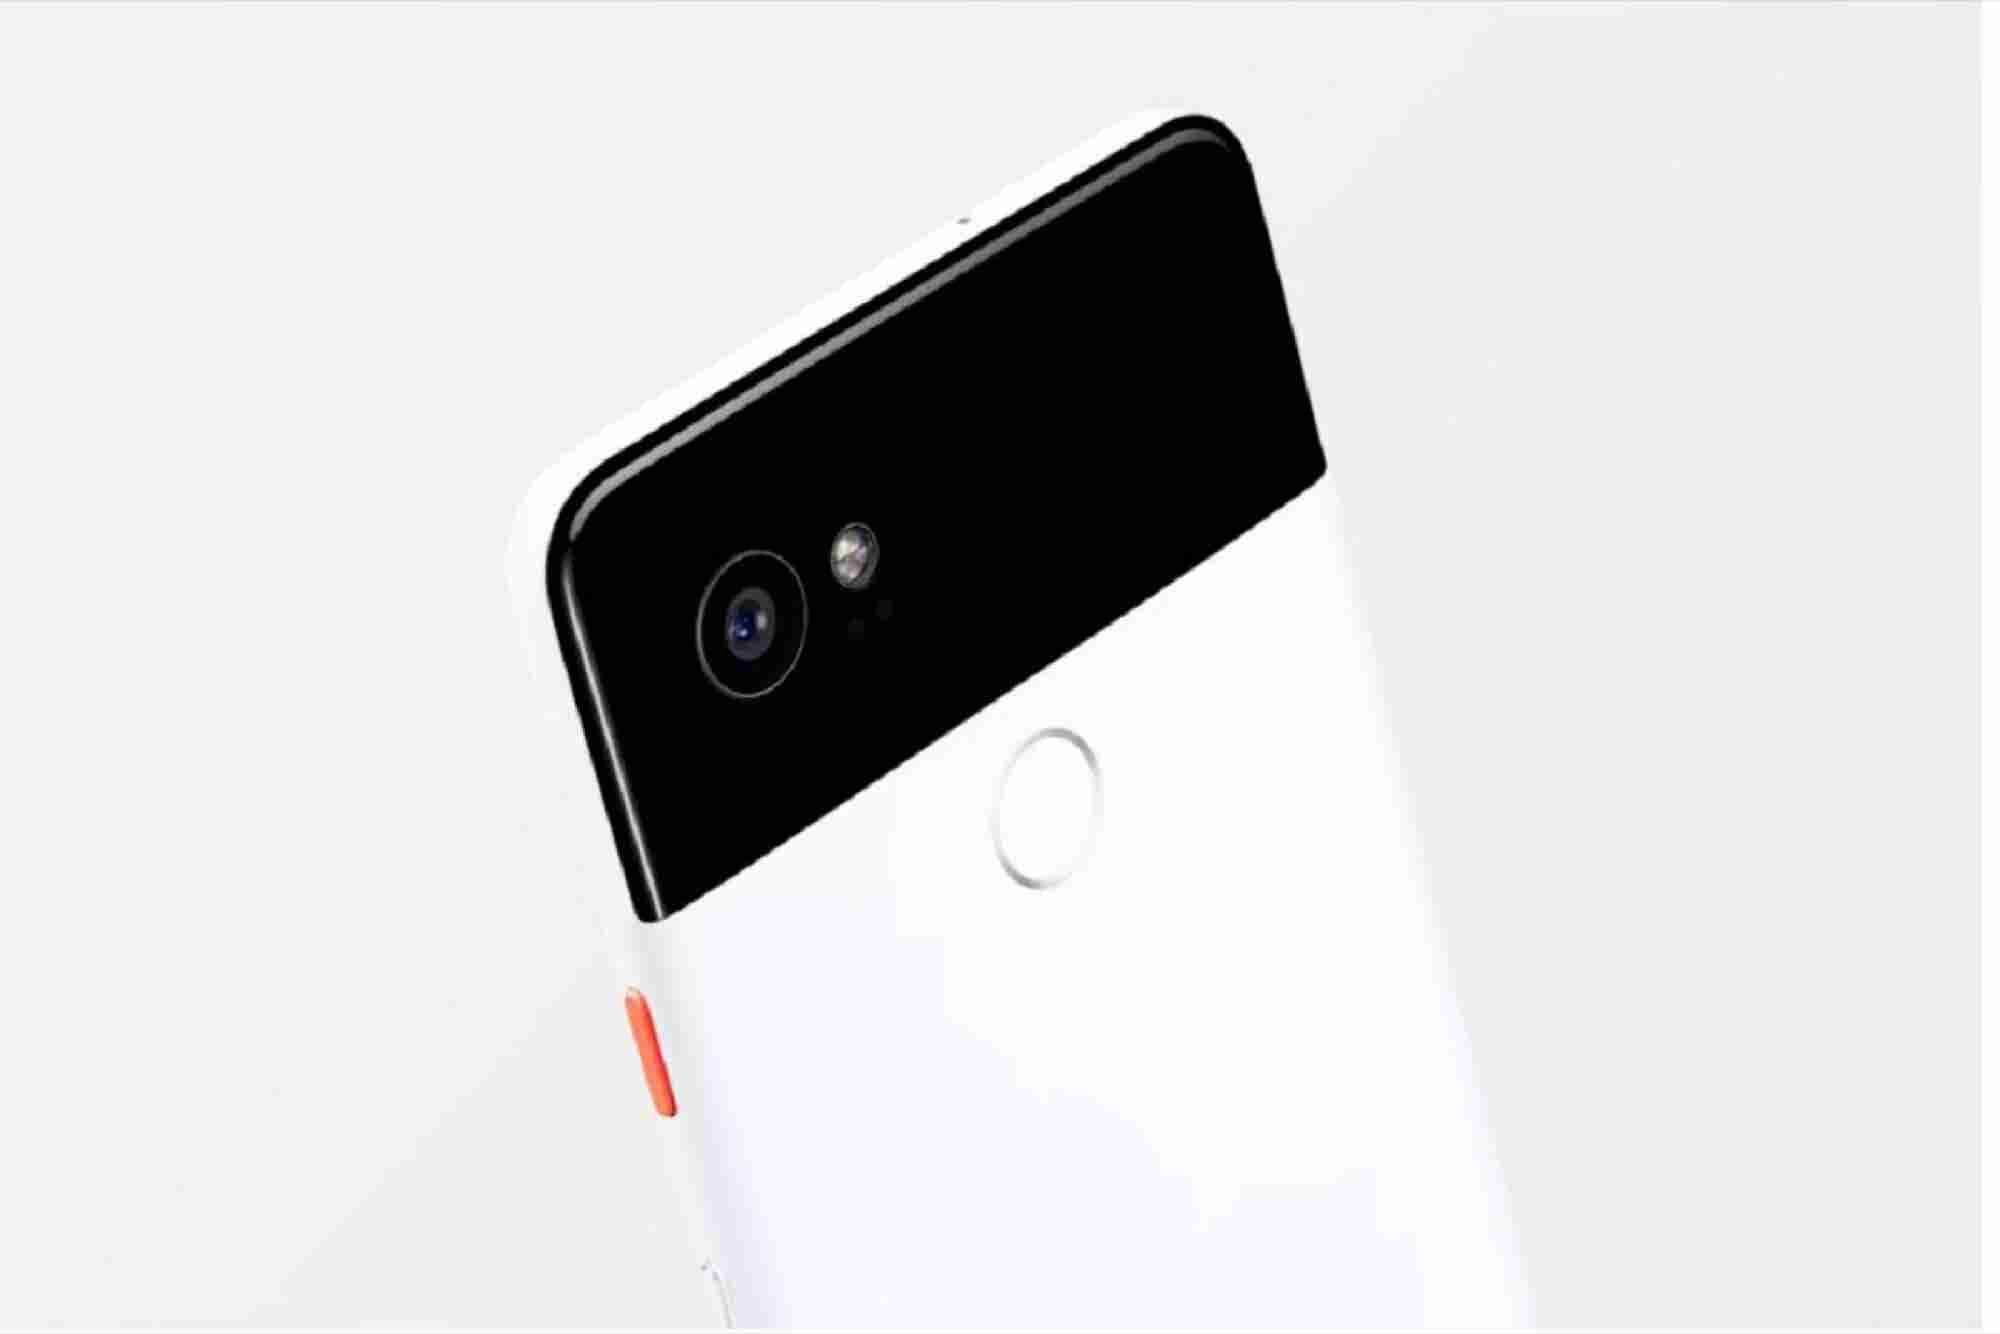 Planning to Buy Pixel 2? Check Out Our Review First